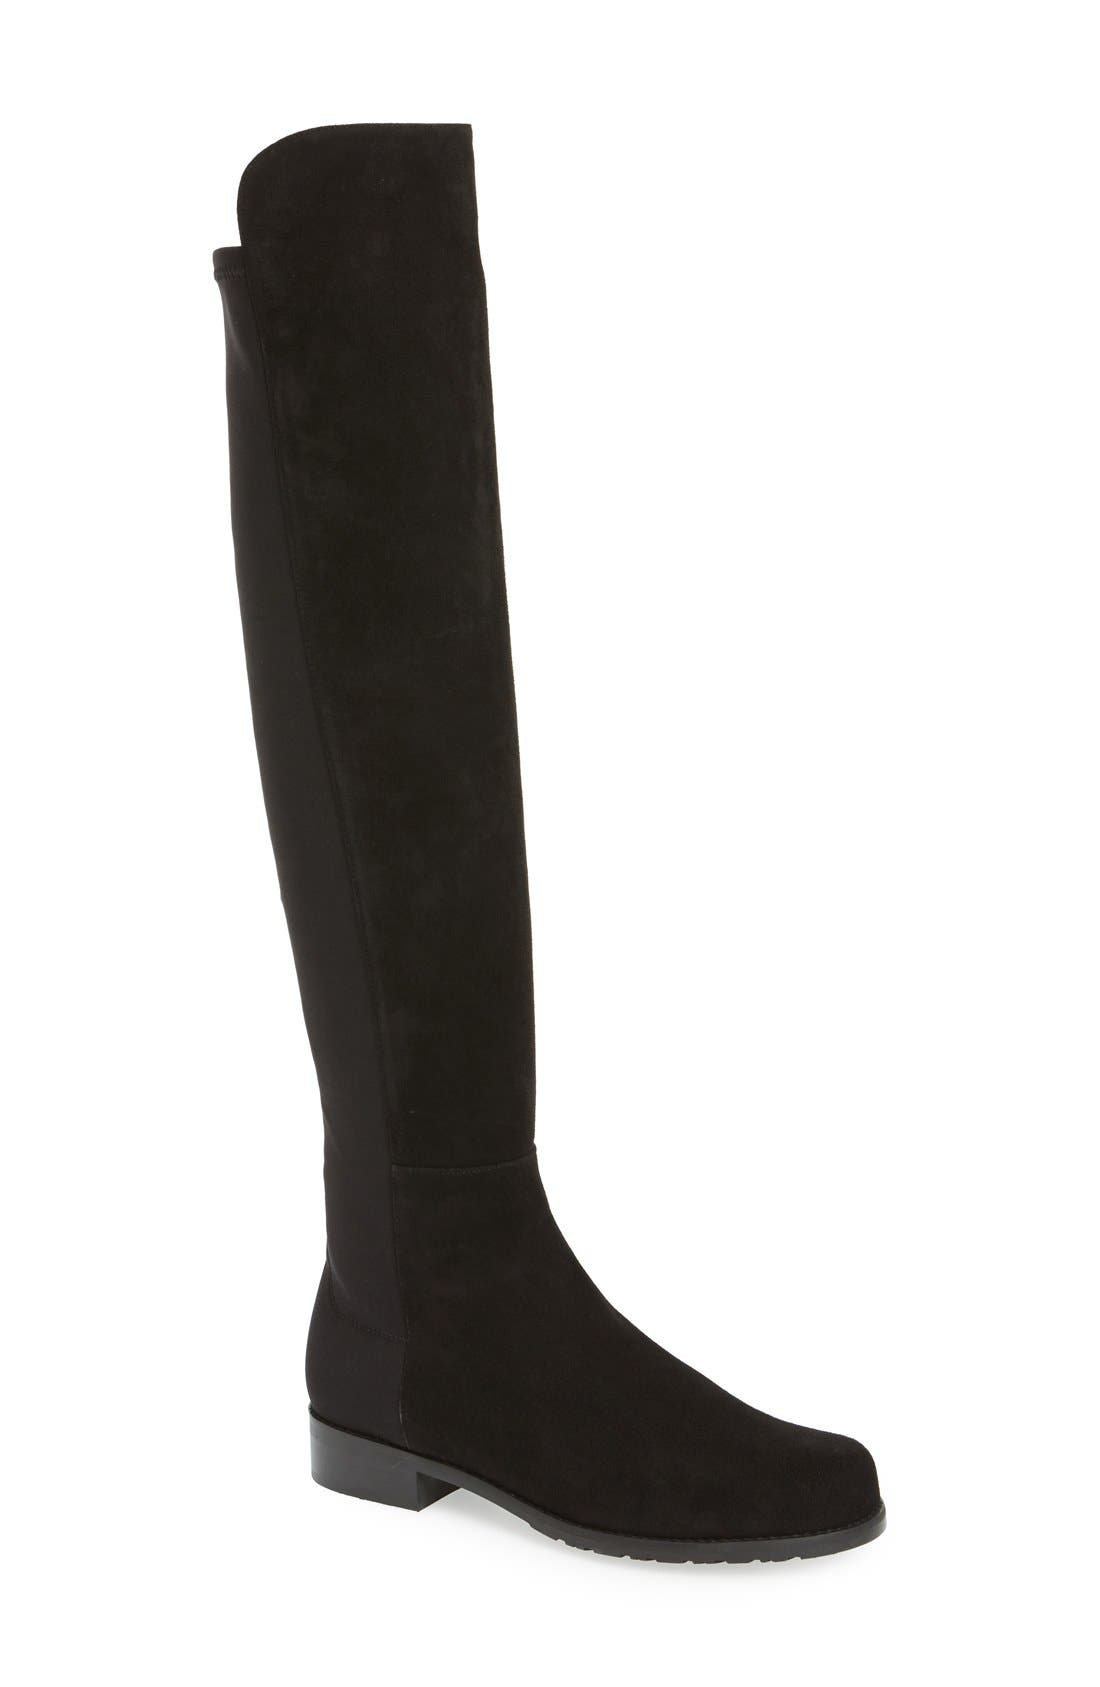 STUART WEITZMAN, 5050 Over the Knee Leather Boot, Main thumbnail 1, color, BLACK SUEDE